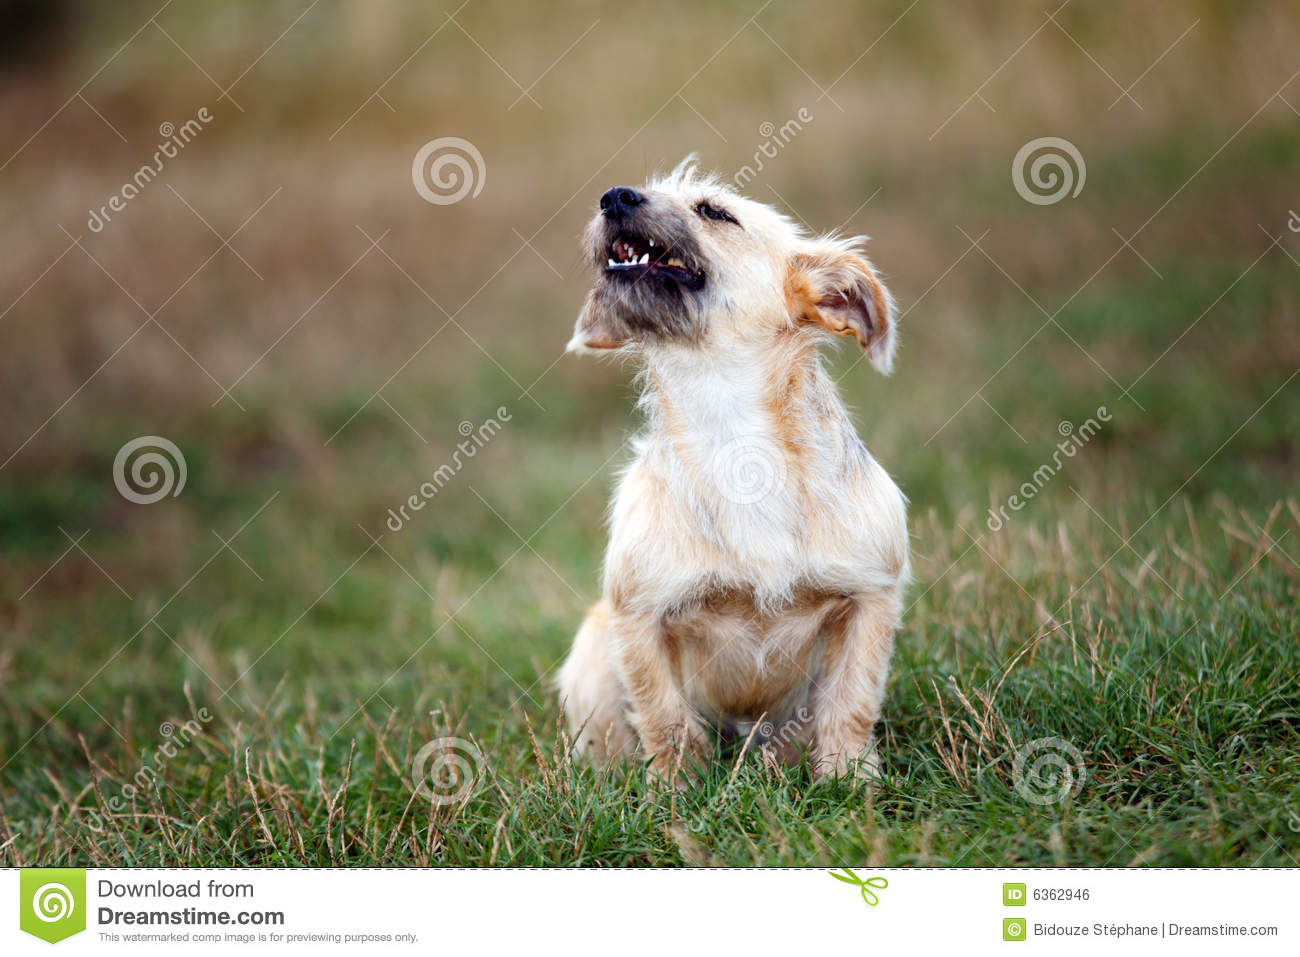 Funny dog bark ringtones and dog wallpapers for android apk download.